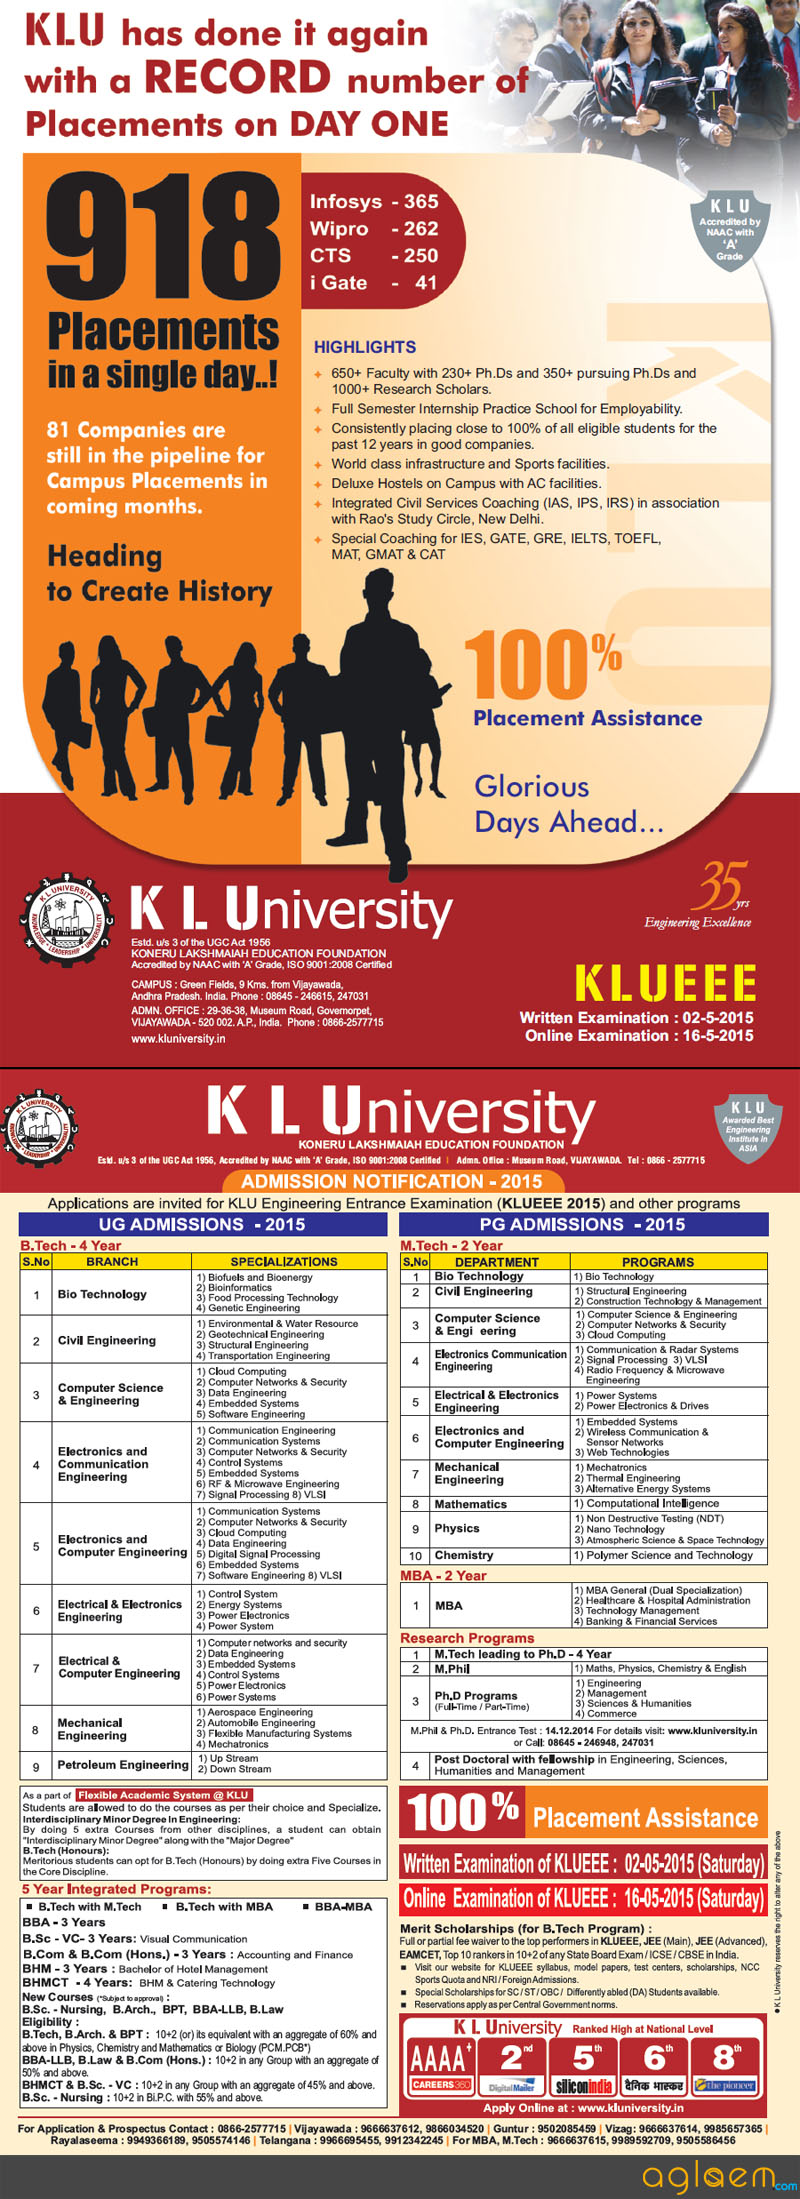 KLUEEE 2015 (KL University) Dates, Eligibility and Other Details